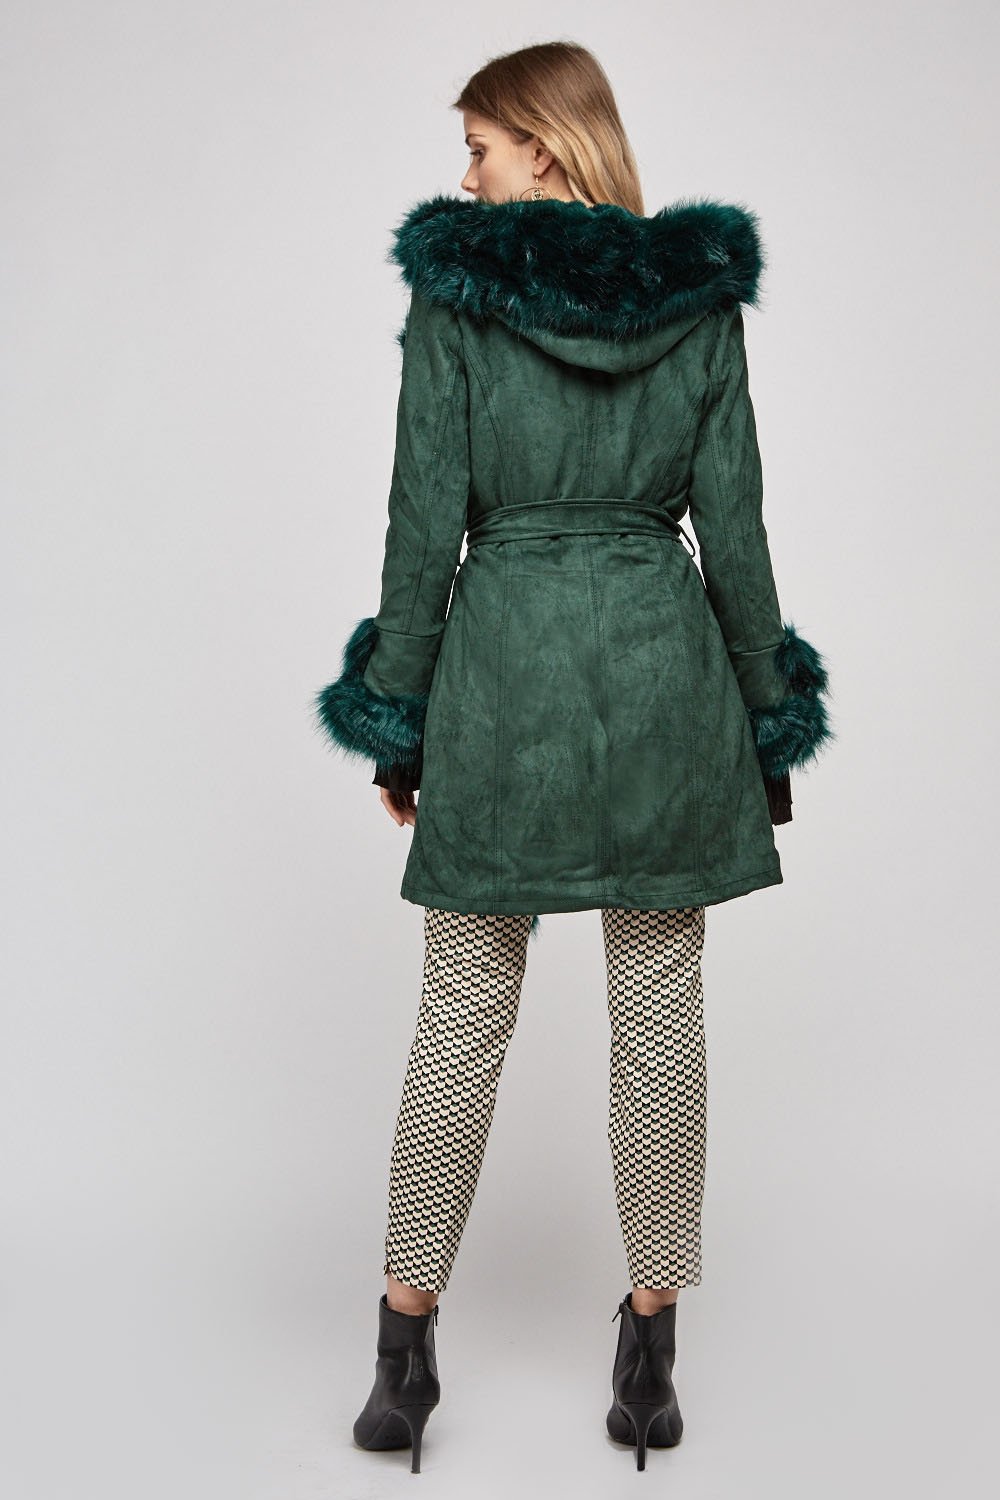 Belted Faux Fur Trim Coat - Forest Green - Just $46